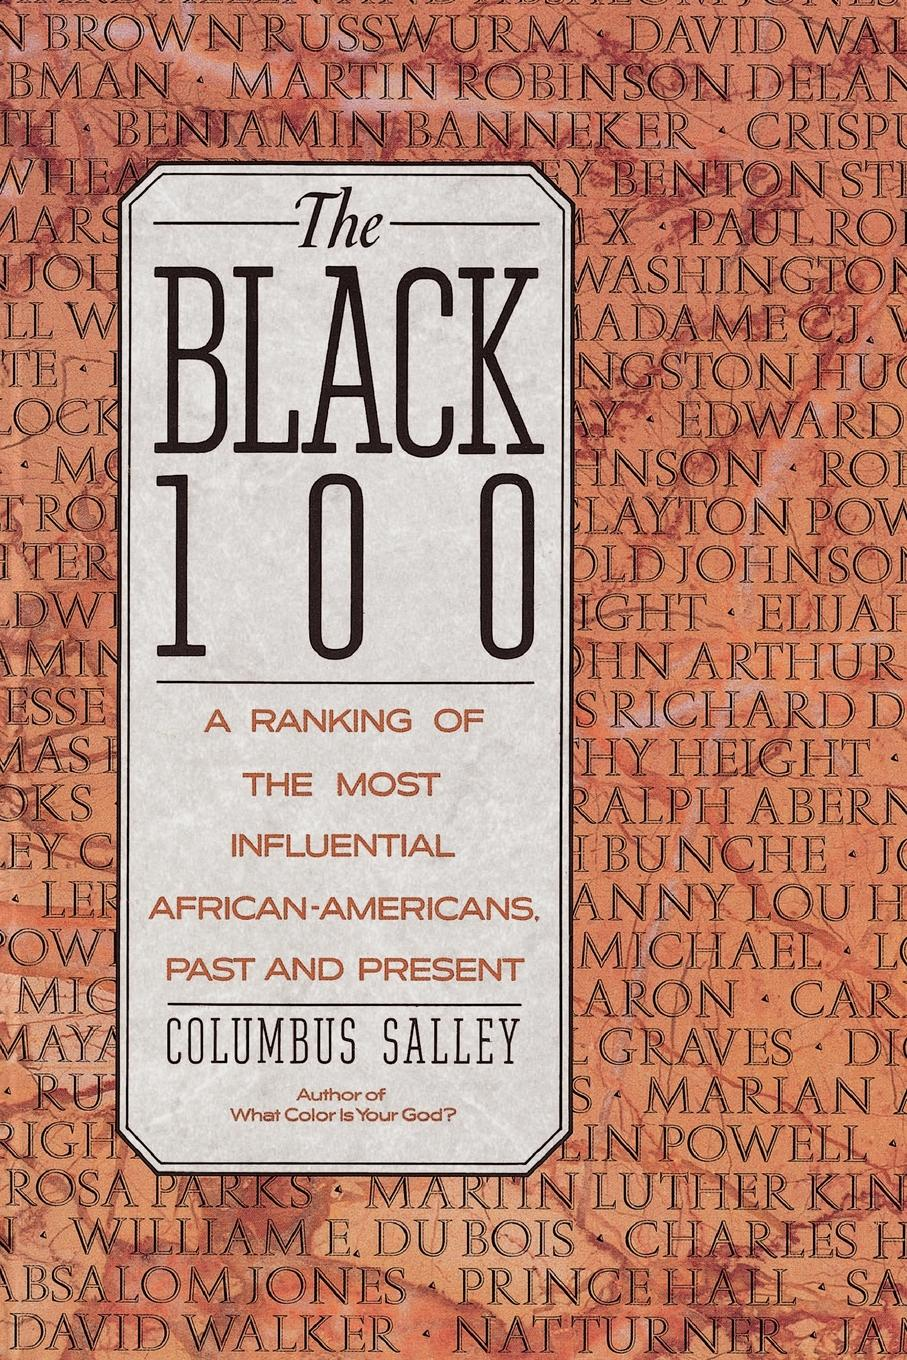 Columbus Salley, Colombus Salley The Black 100 geoffrey ashe all about king arthur